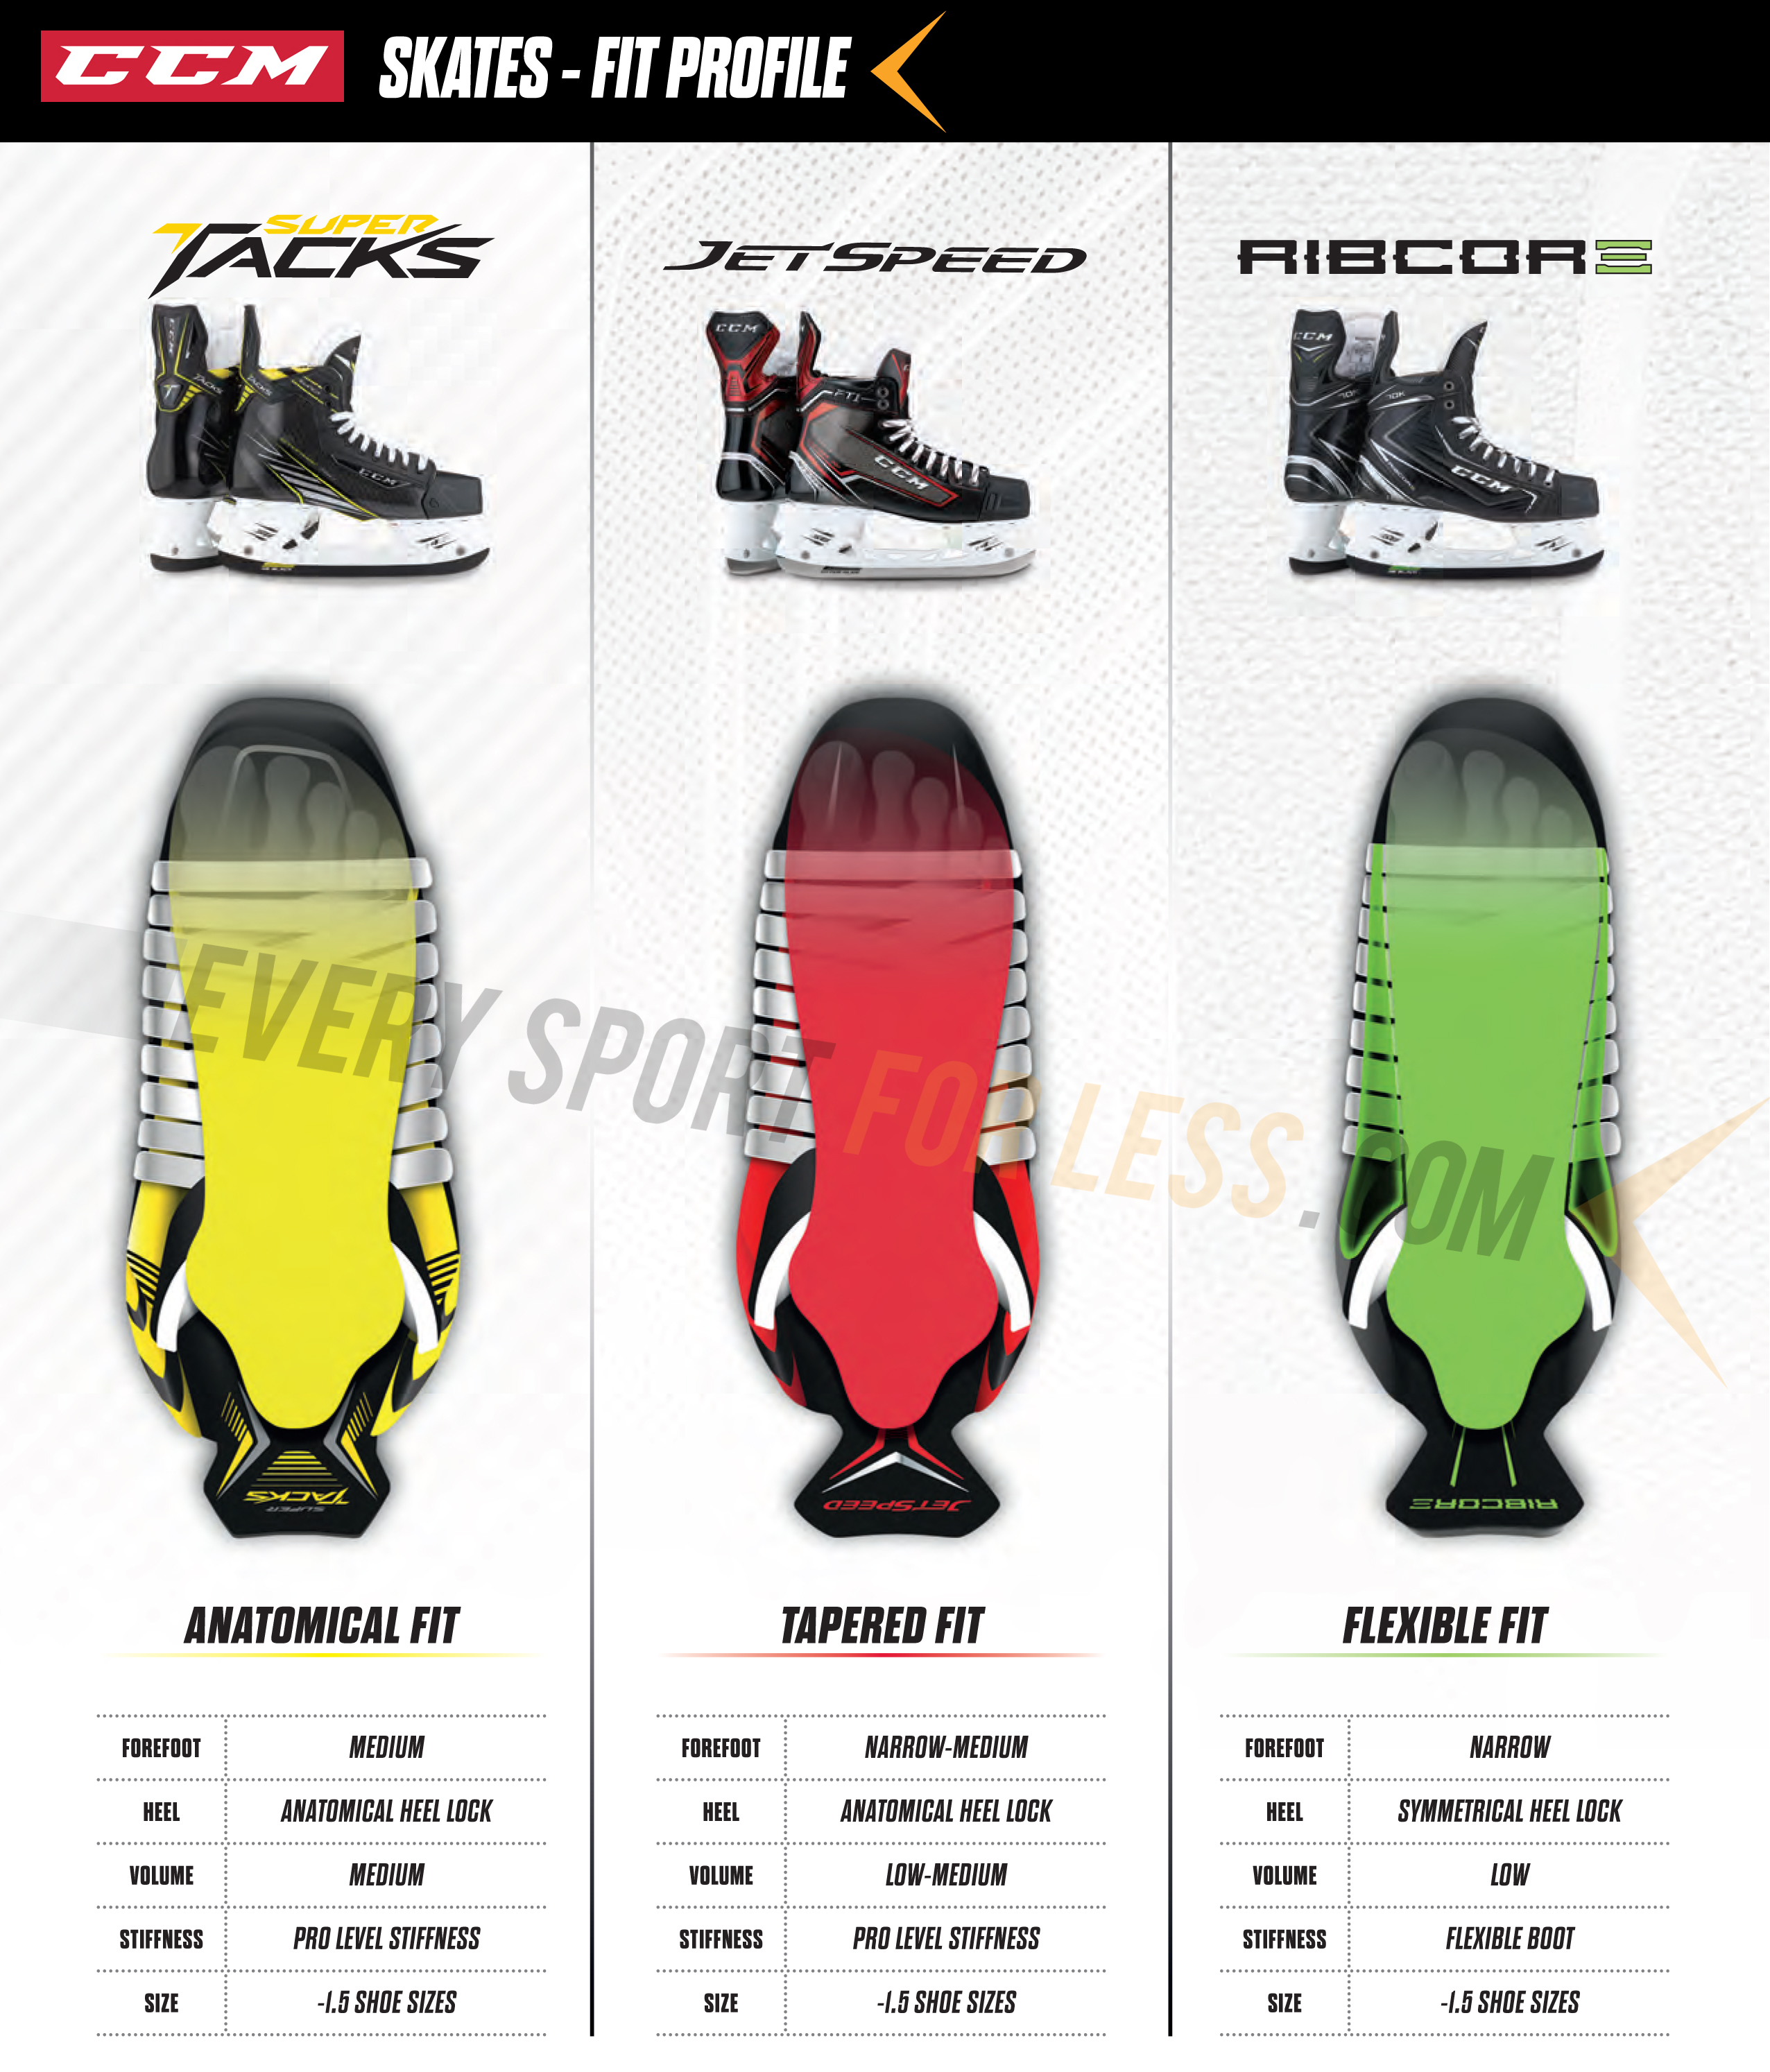 ccm-skate-fit-comparison-chart.jpg